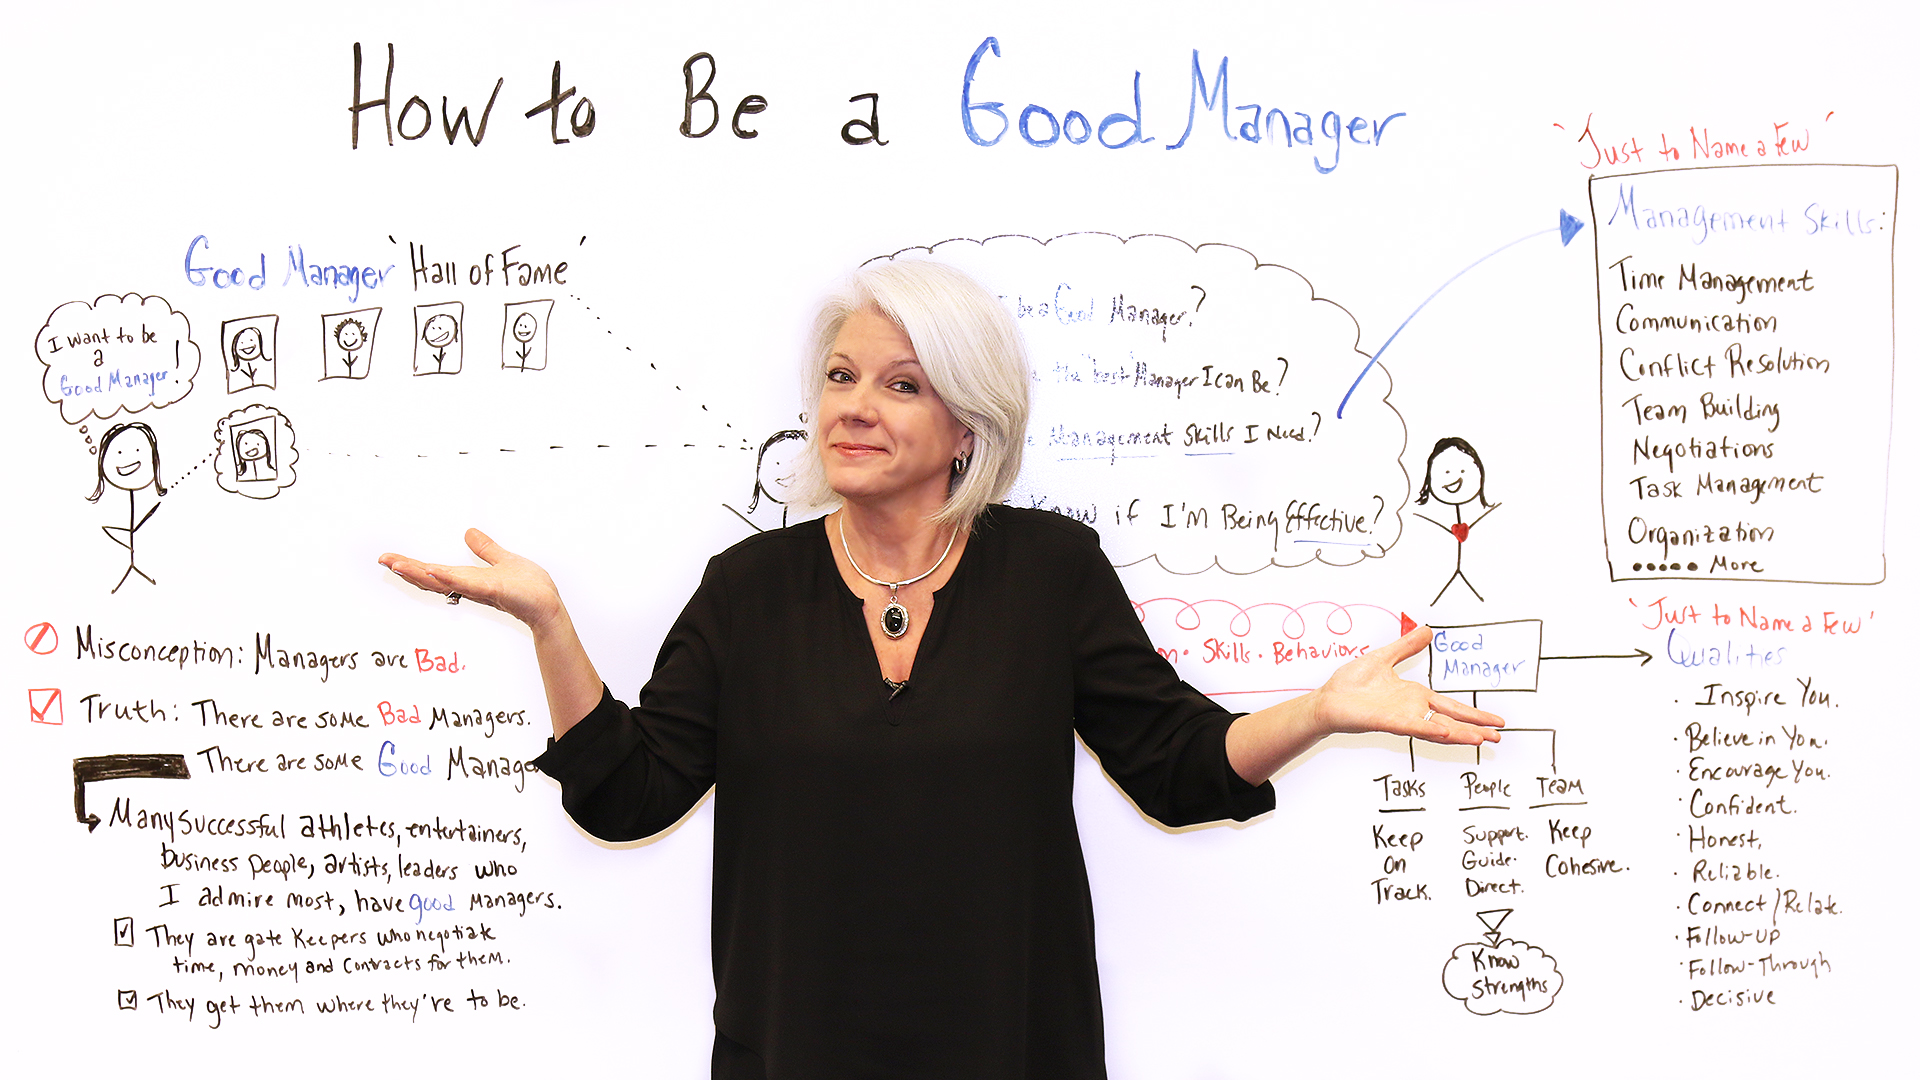 How-to-Be-a-Good-Manager-Jennifer